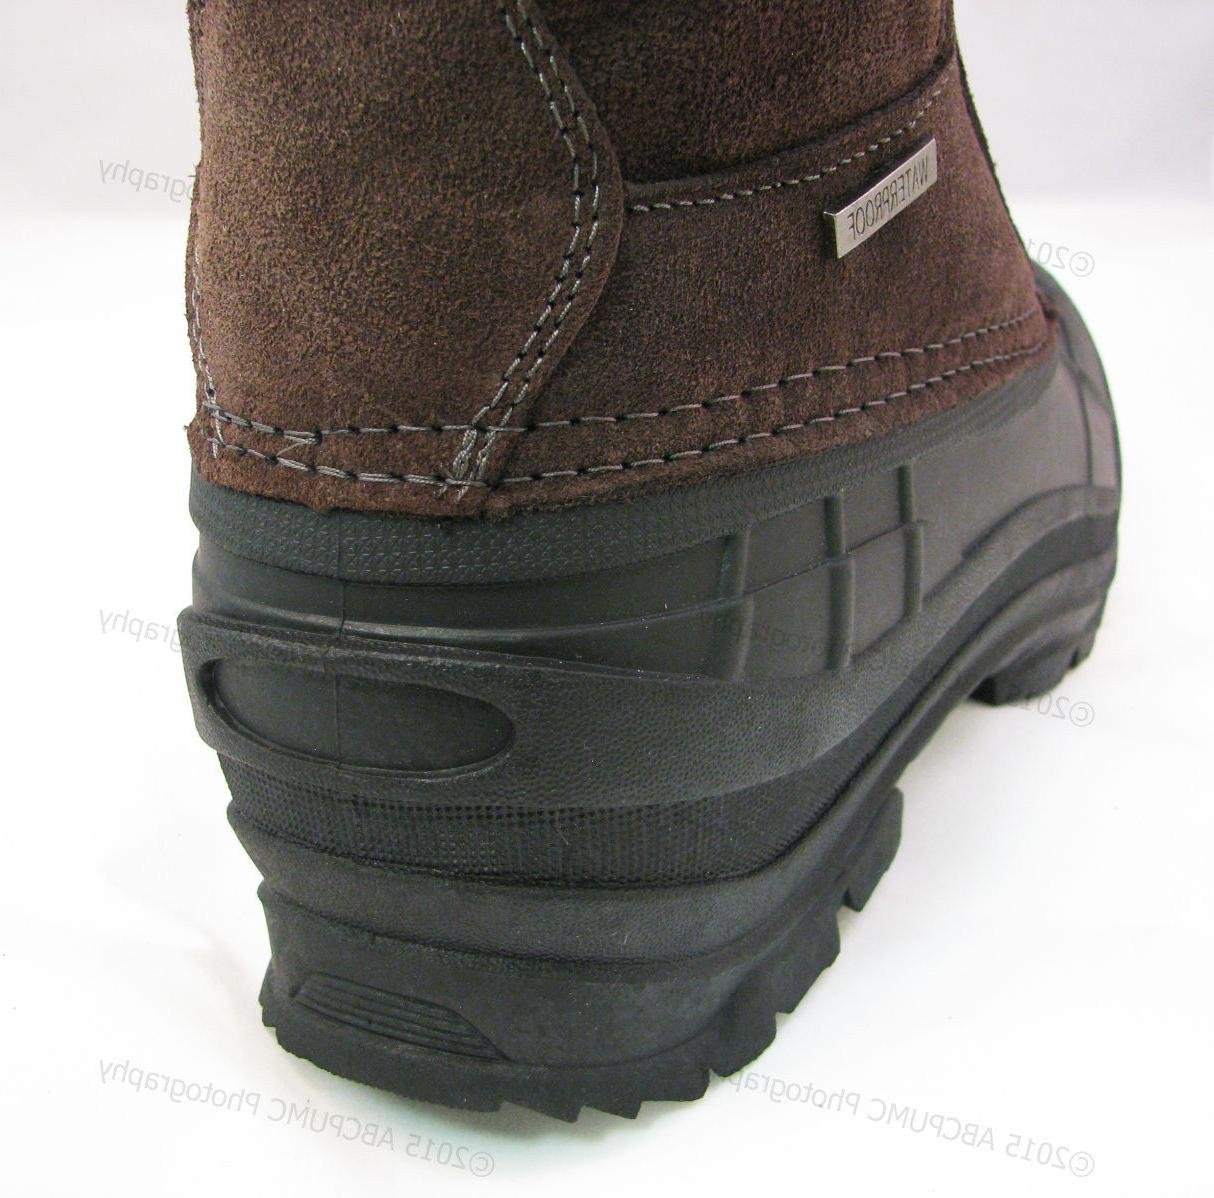 Brand New Boots Leather Insulated Waterproof Hiking